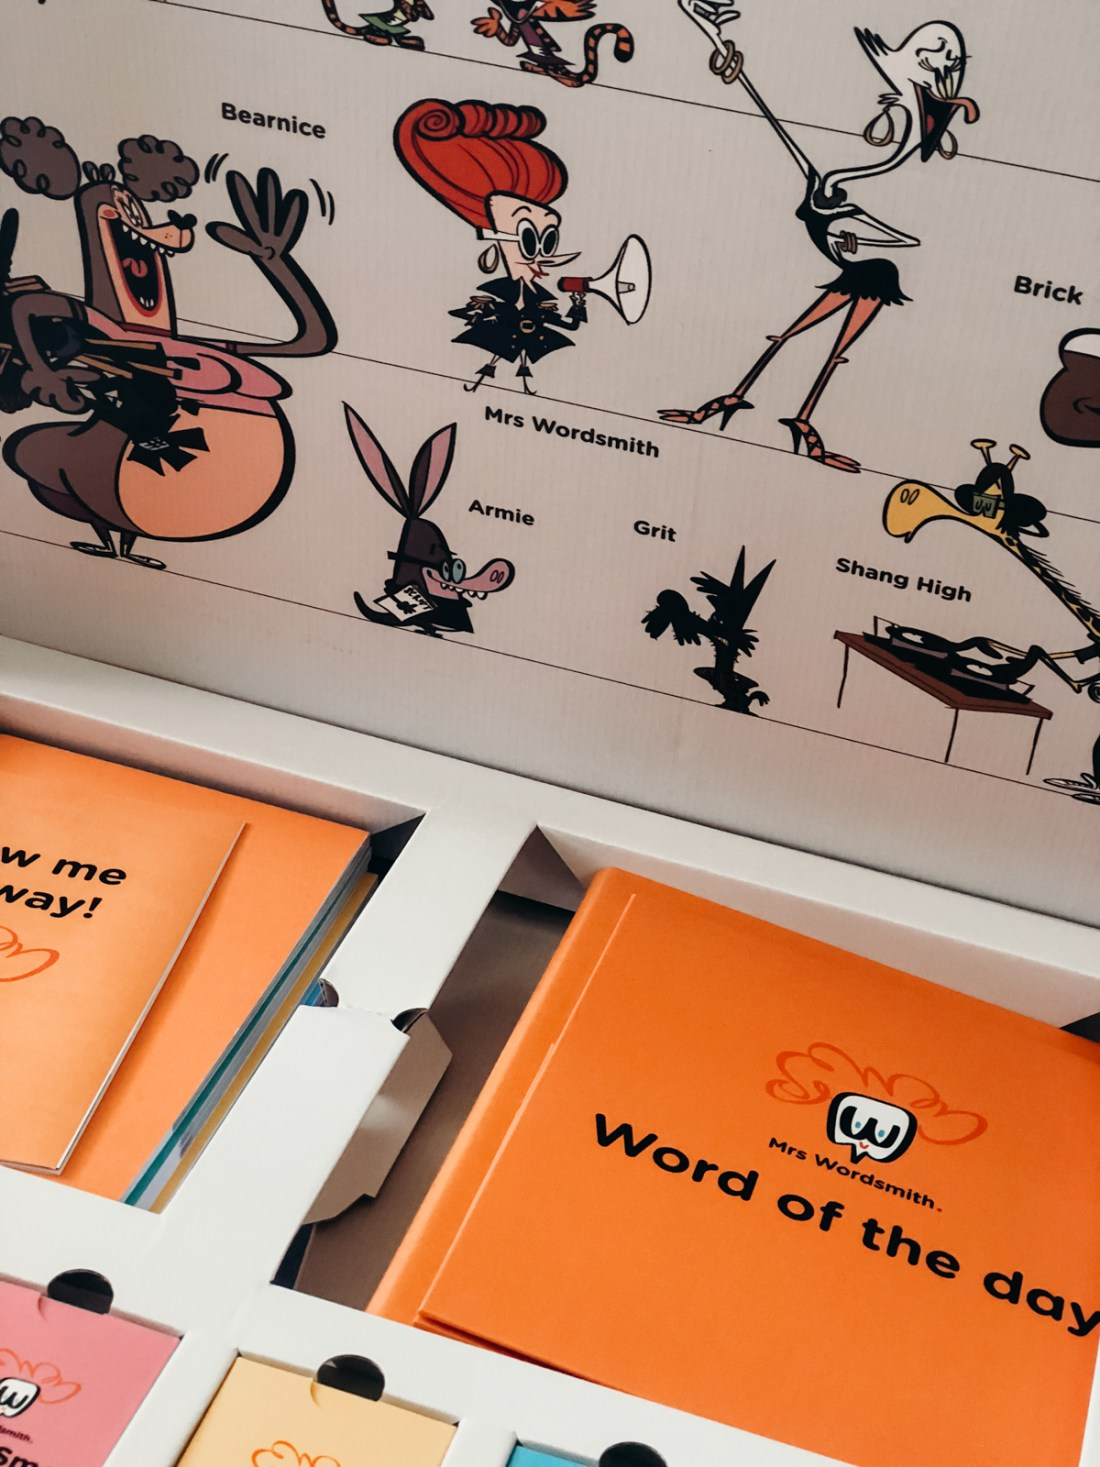 Vocabulary Lesson for Kids ages 6-13 (Mrs. Wordsmith)